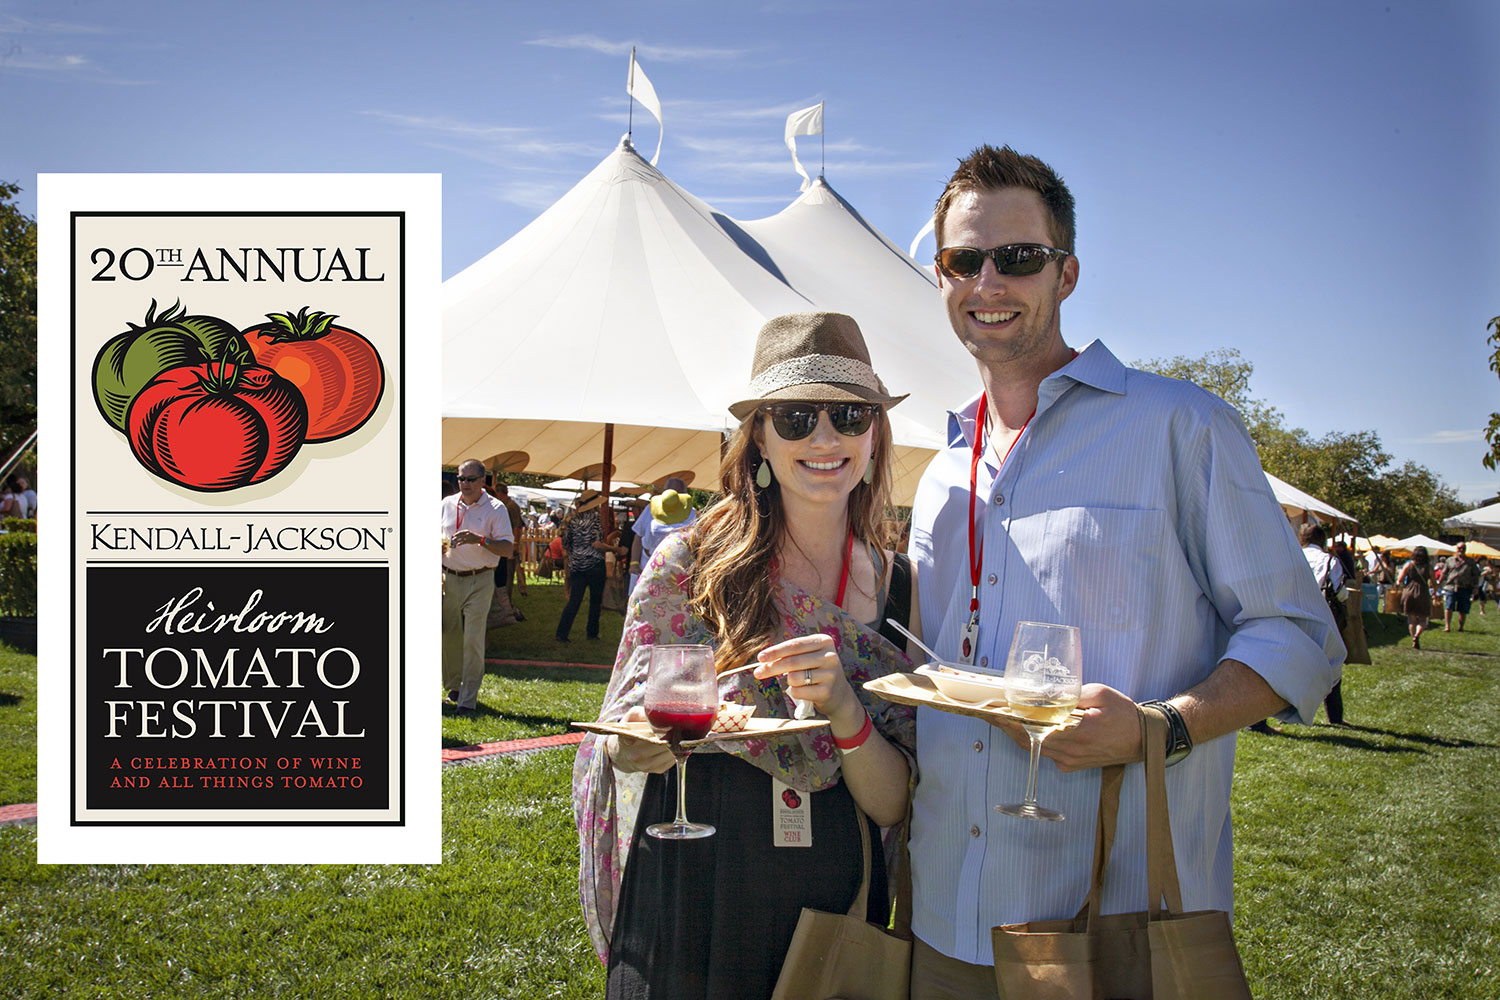 20th annual Kendall-Jackson Heirloom Tomato Festival